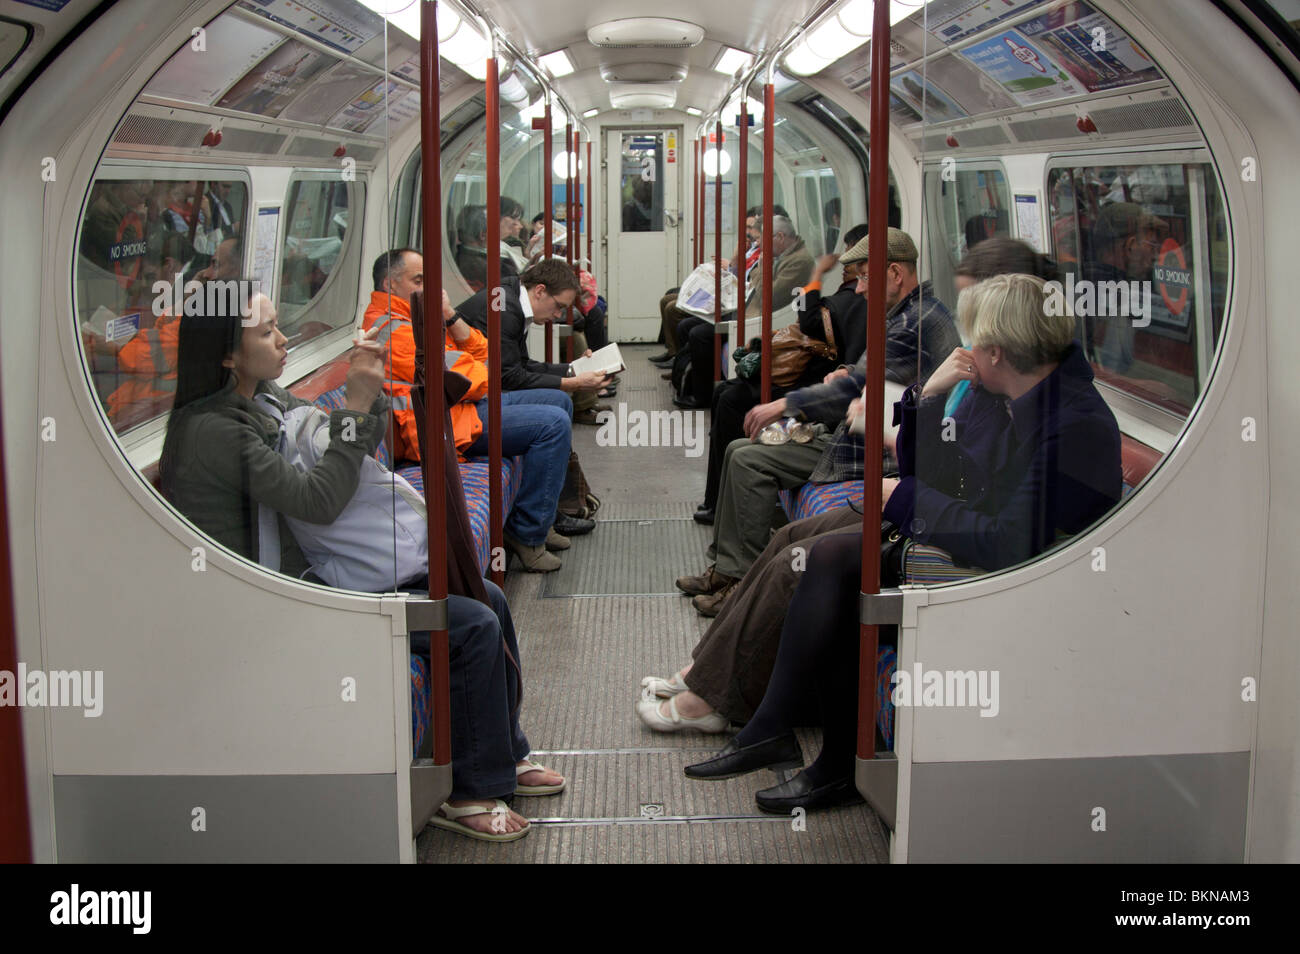 Bakerloo Line Train London Underground - Stock Image